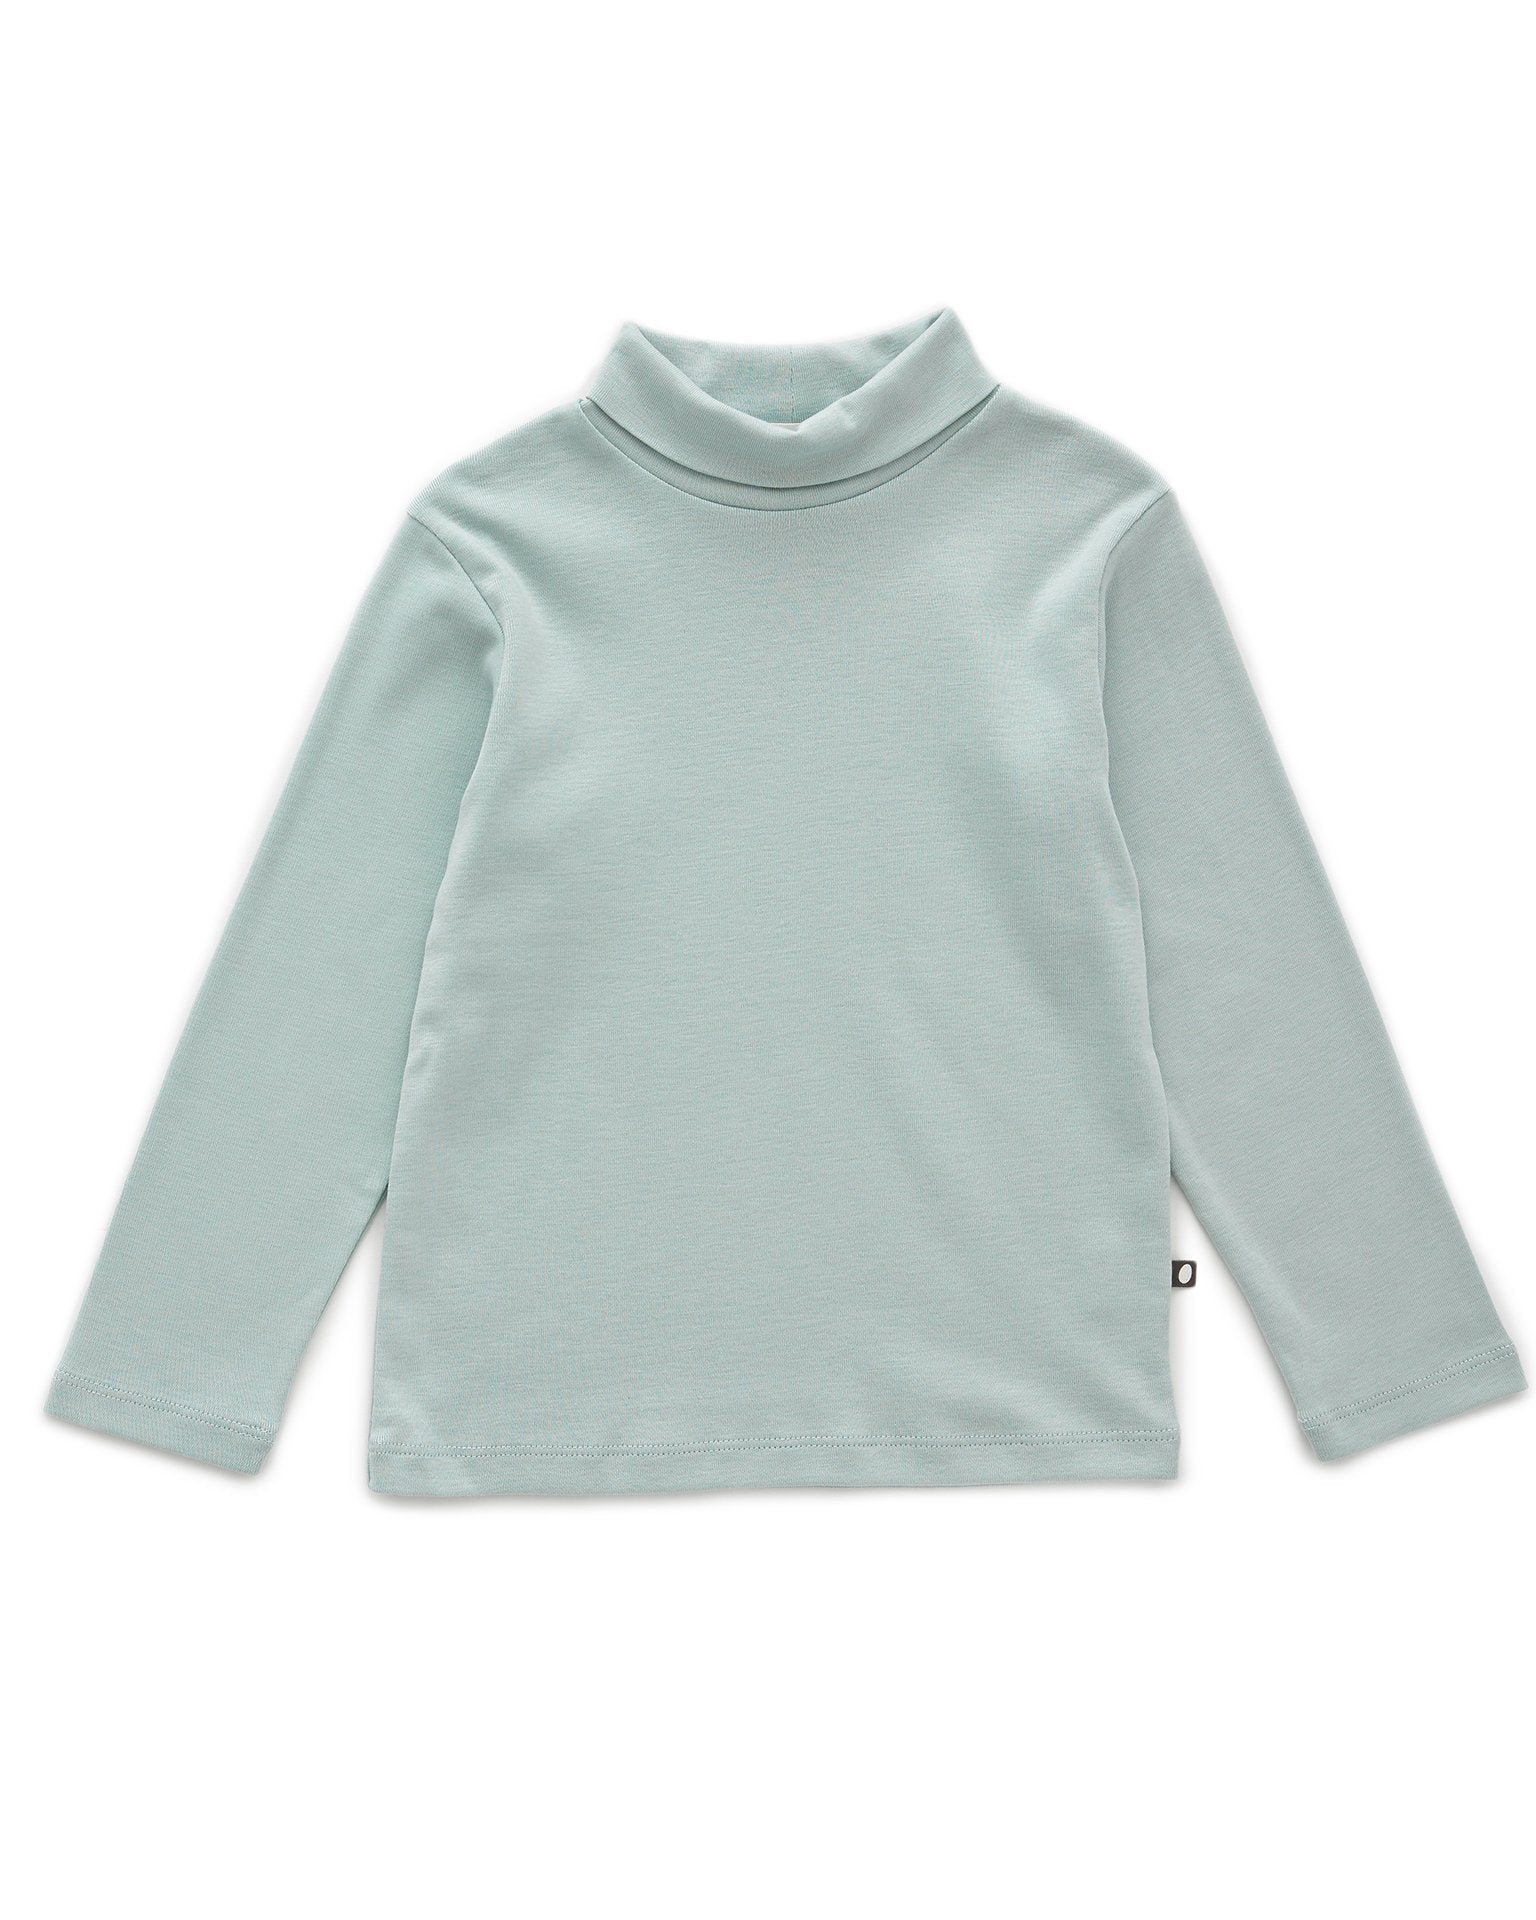 Little oeuf girl turtleneck in sky grey